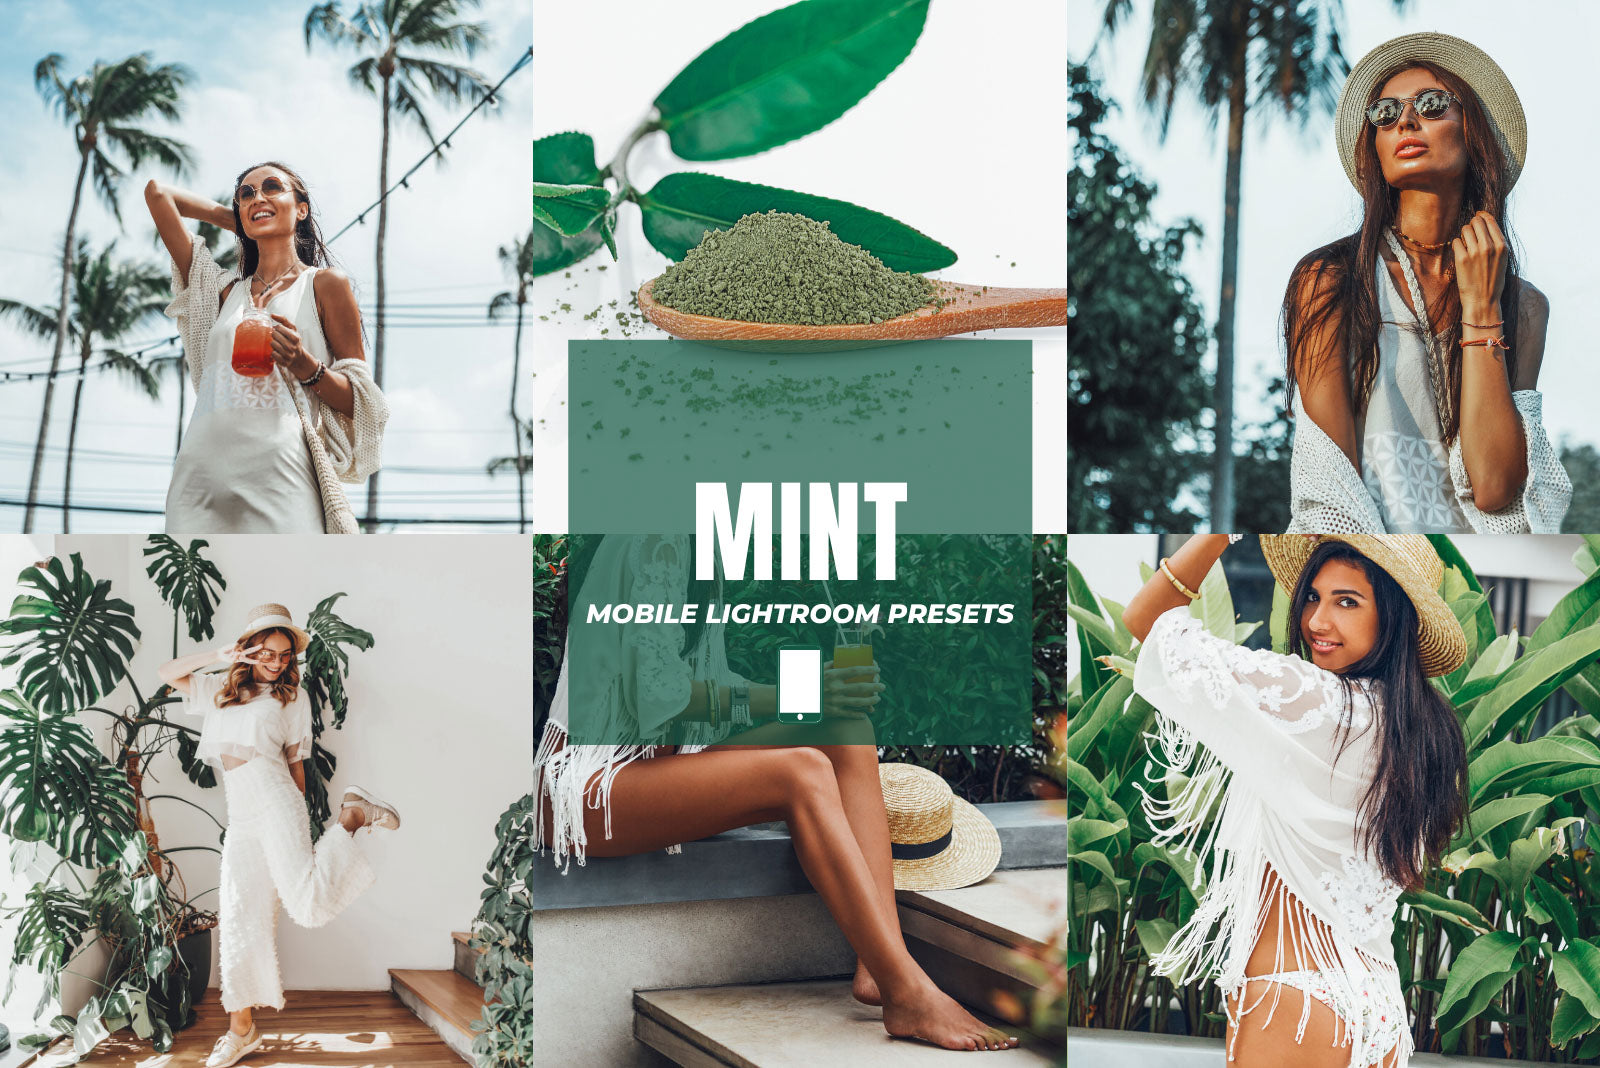 MINT MOBILE LIGHTROOM PRESETS by The Viral Presets